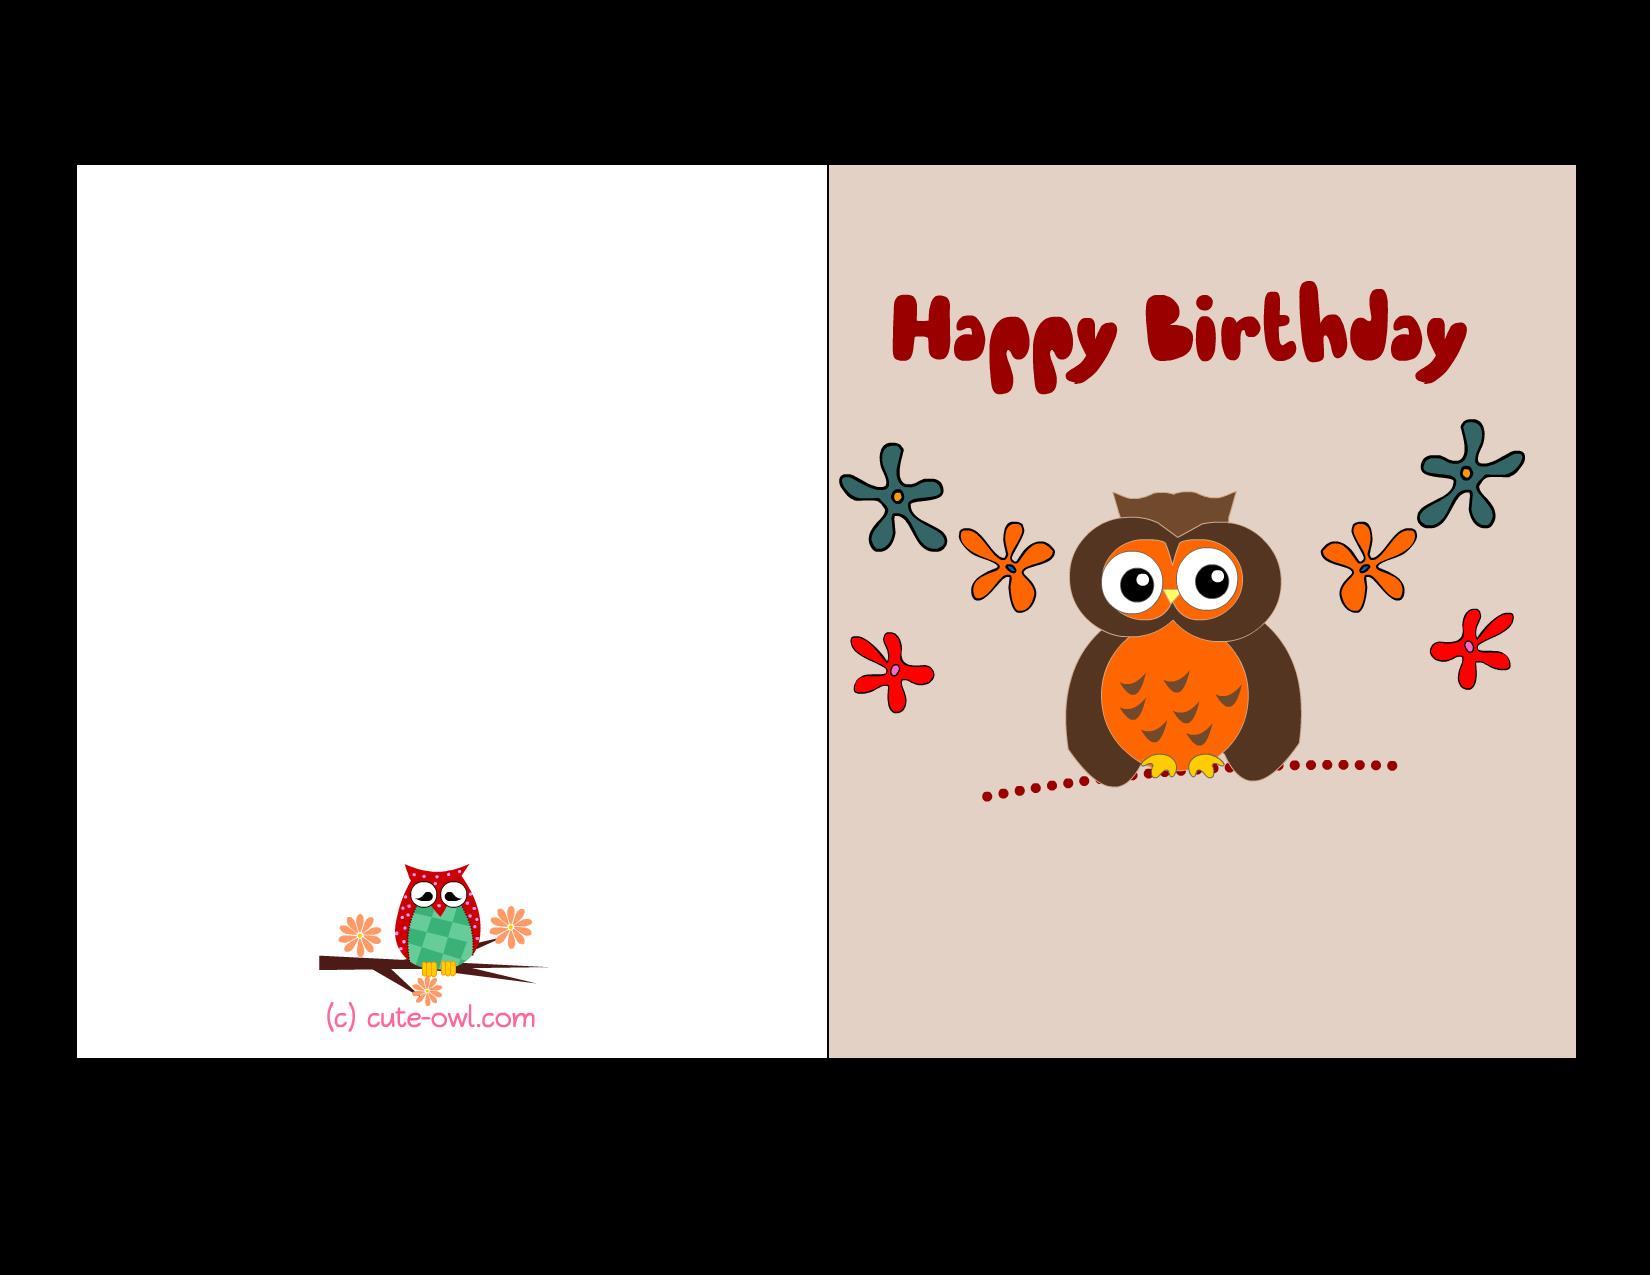 free printable 18th birthday cards ; colorful-happy-birthday-card-featuring-cute-owl-dark-brown-owl-animal-color-images-flower-items-design-birthday-cards-printable